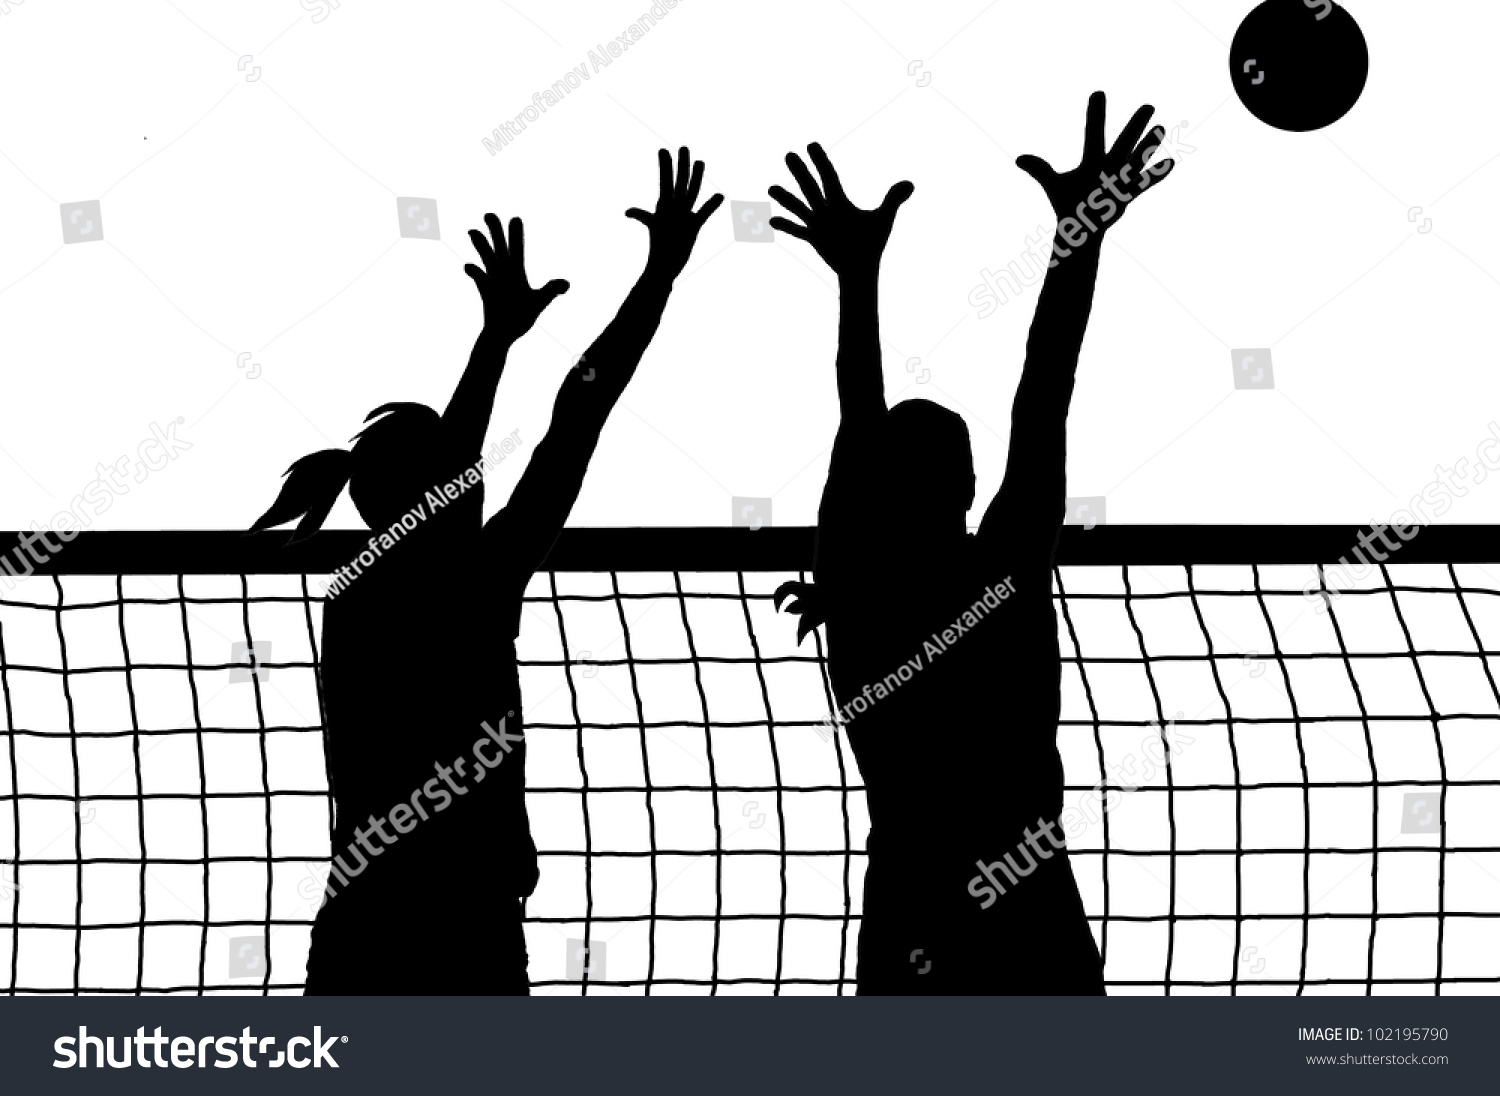 Abstract Triangle Volleyball Player Silhouette Stock: Volleyball Two Women And Ball Silhouette Vector